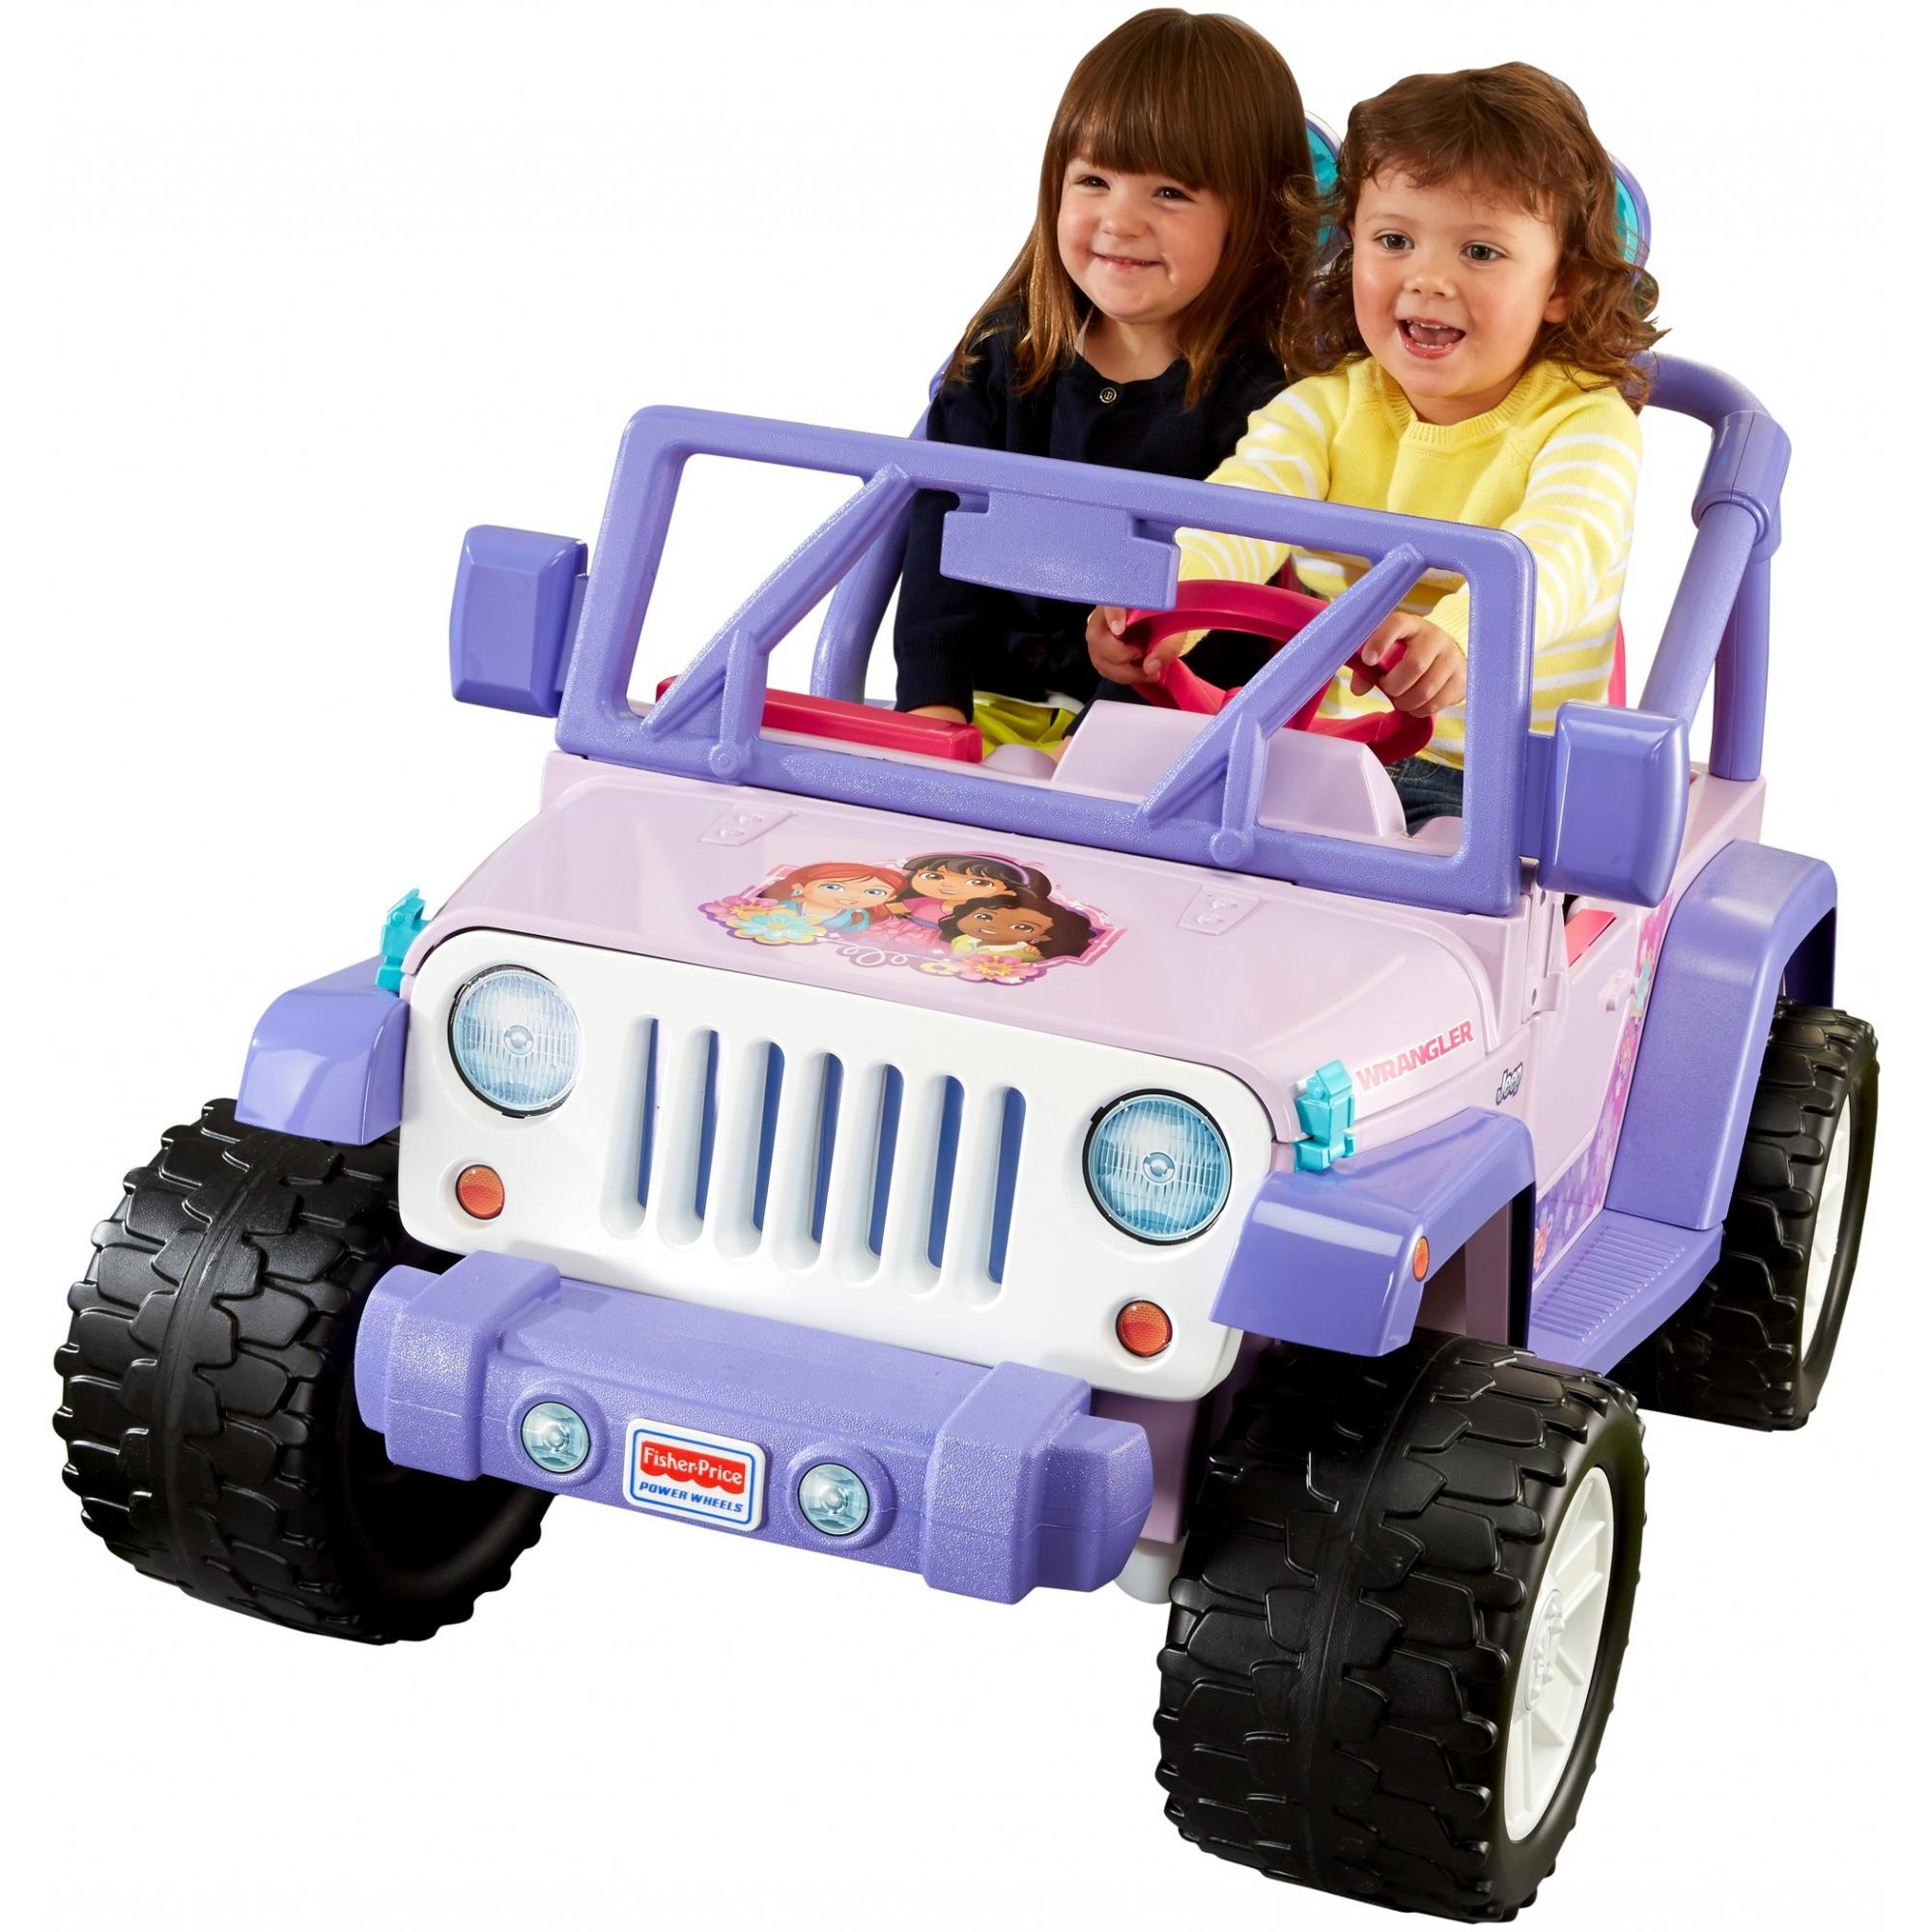 Power Wheels Nickelodeon Dora and Friends Jeep Wrangler 12-Volt Battery-Powered Ride-On by FISHER PRICE